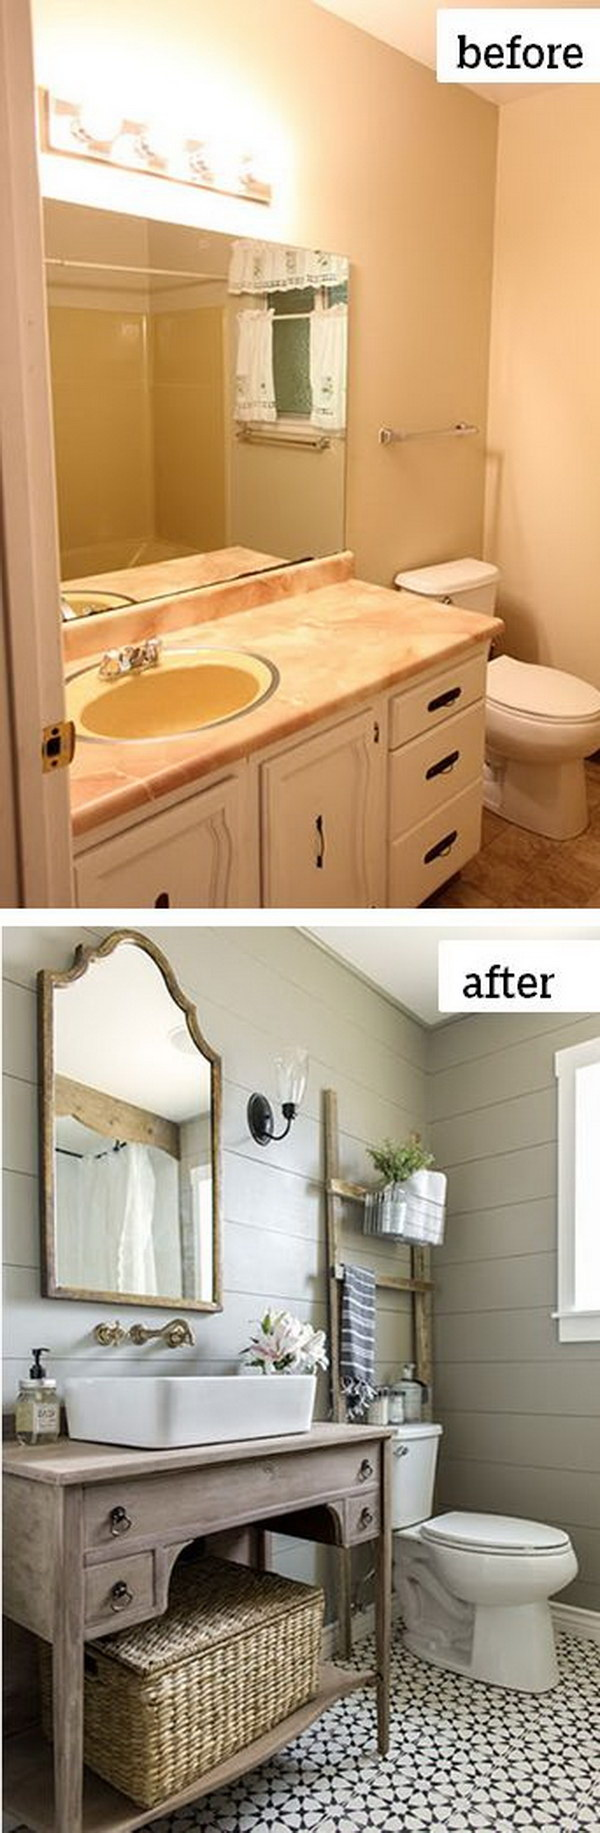 Before and after makeovers 20 most beautiful bathroom for Ideas for bathroom renovation pictures